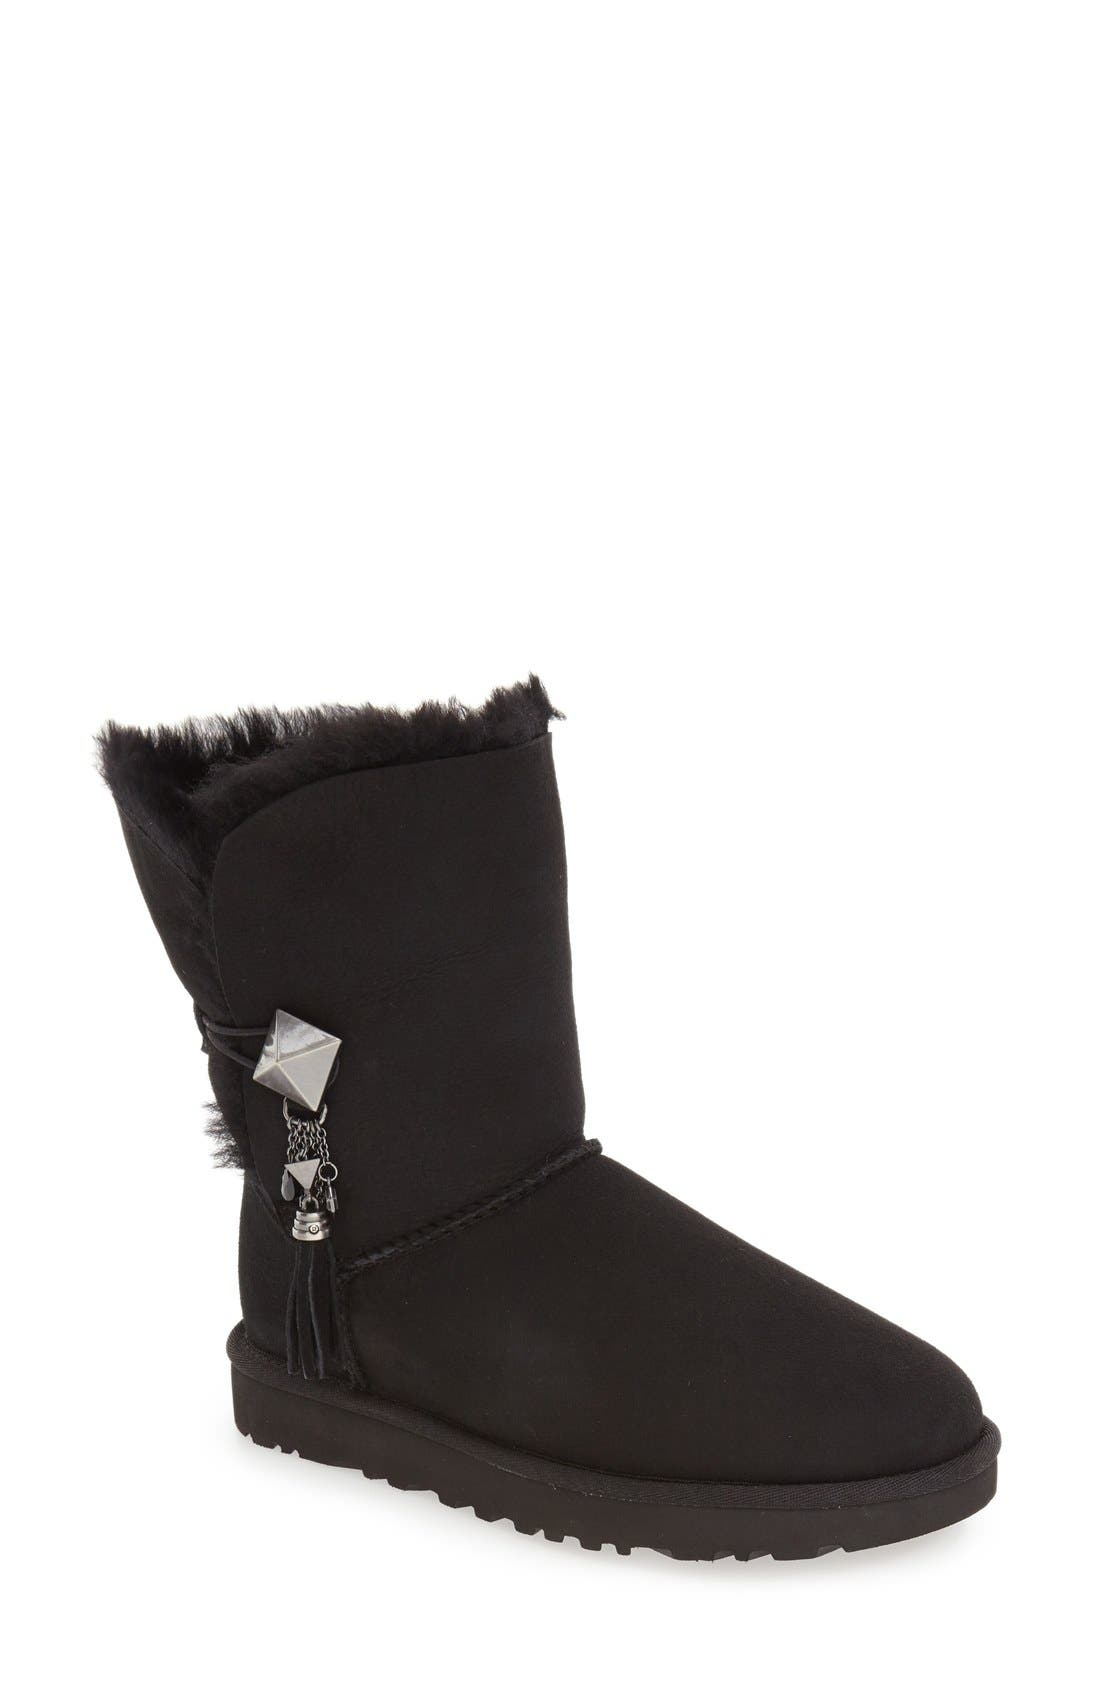 efdb17a6024 Sale  Women s Boots   Booties